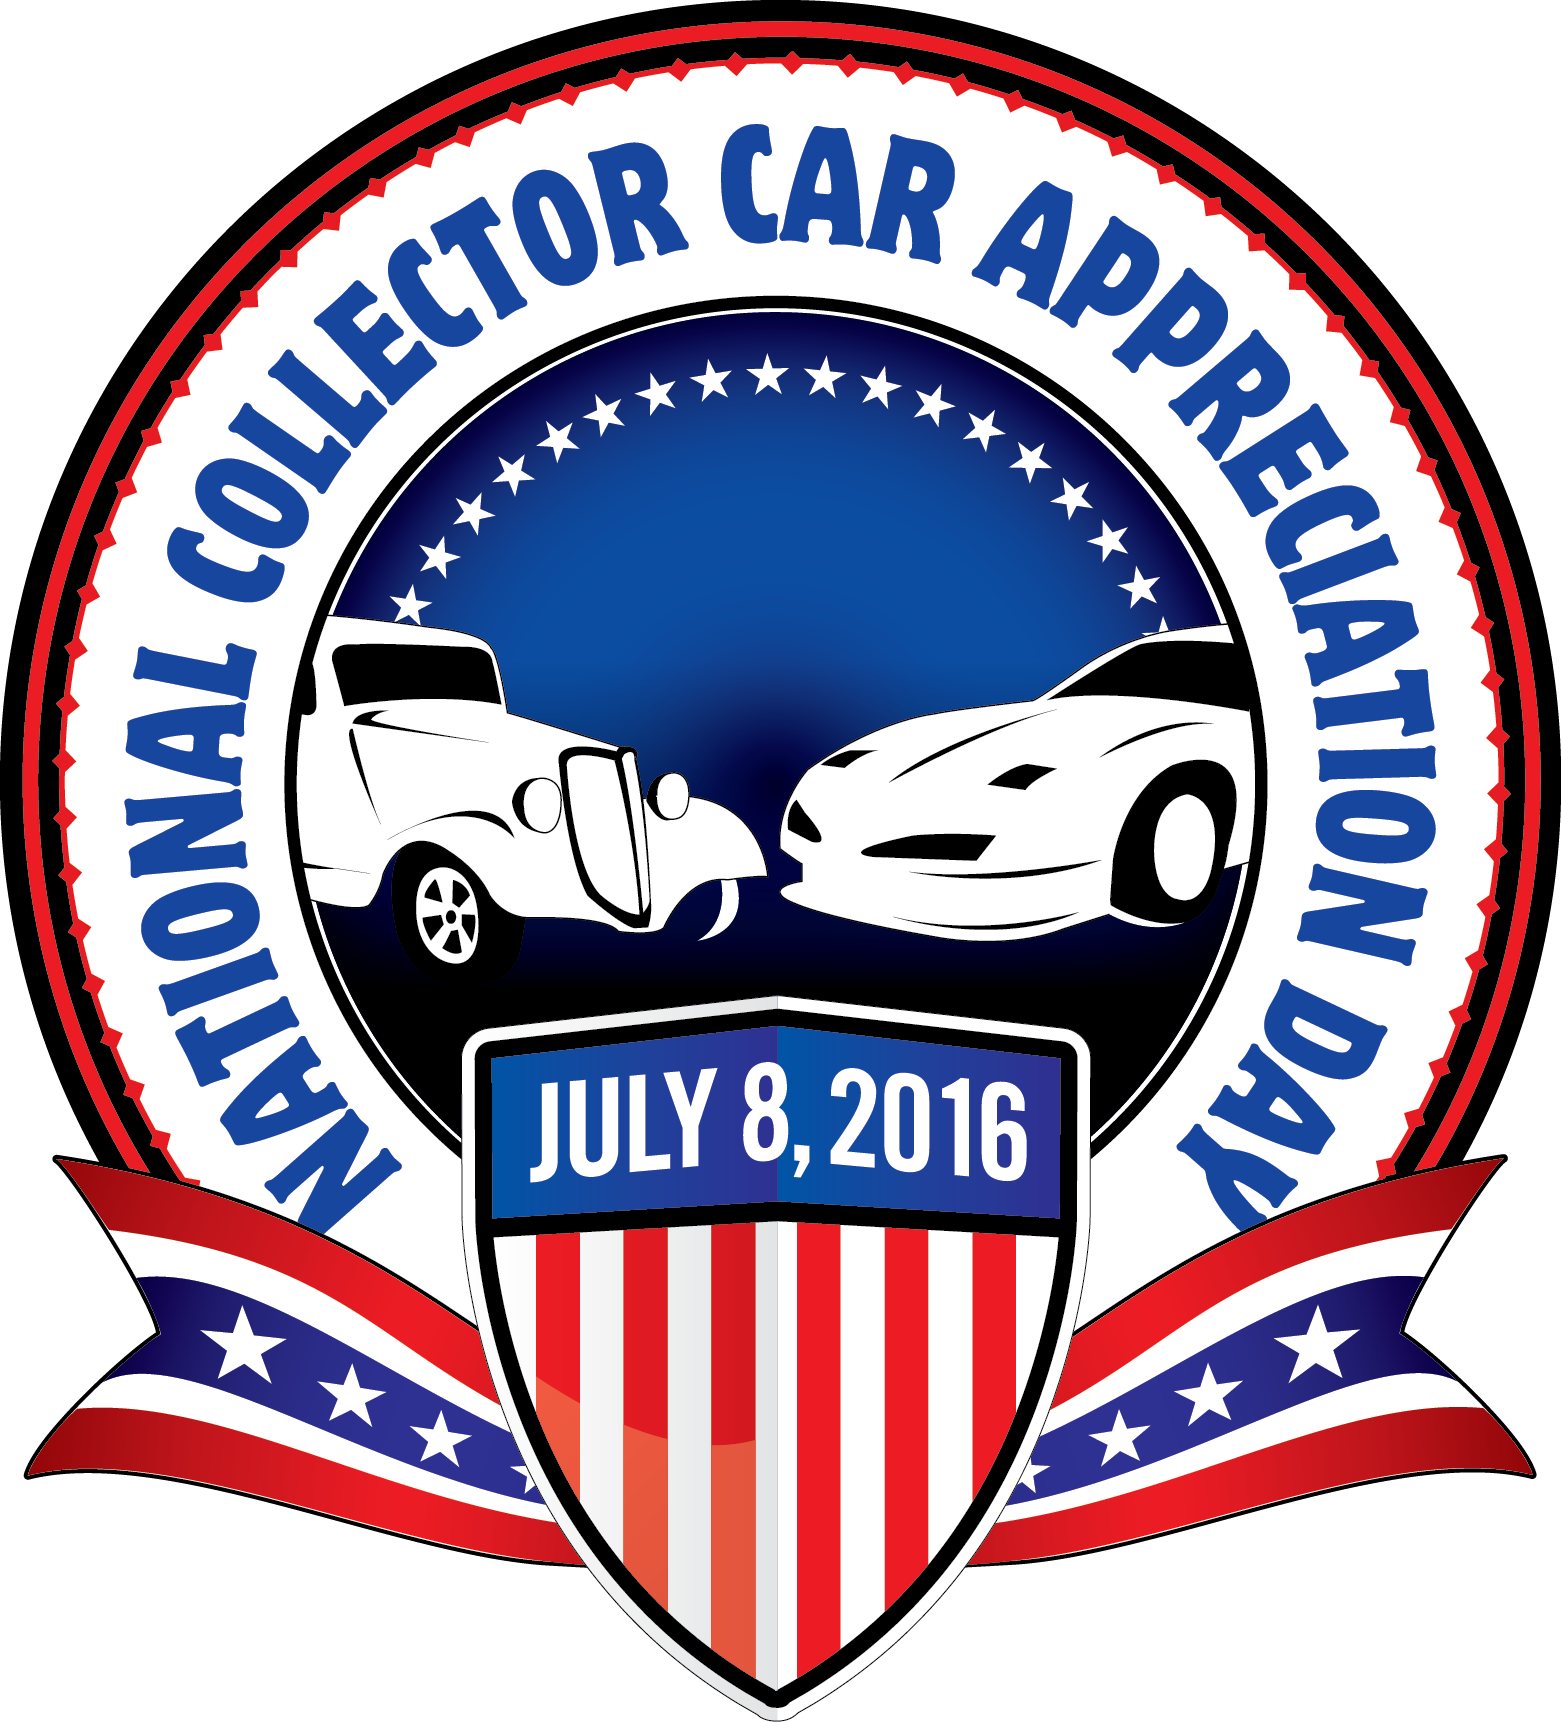 National Car Collector Day